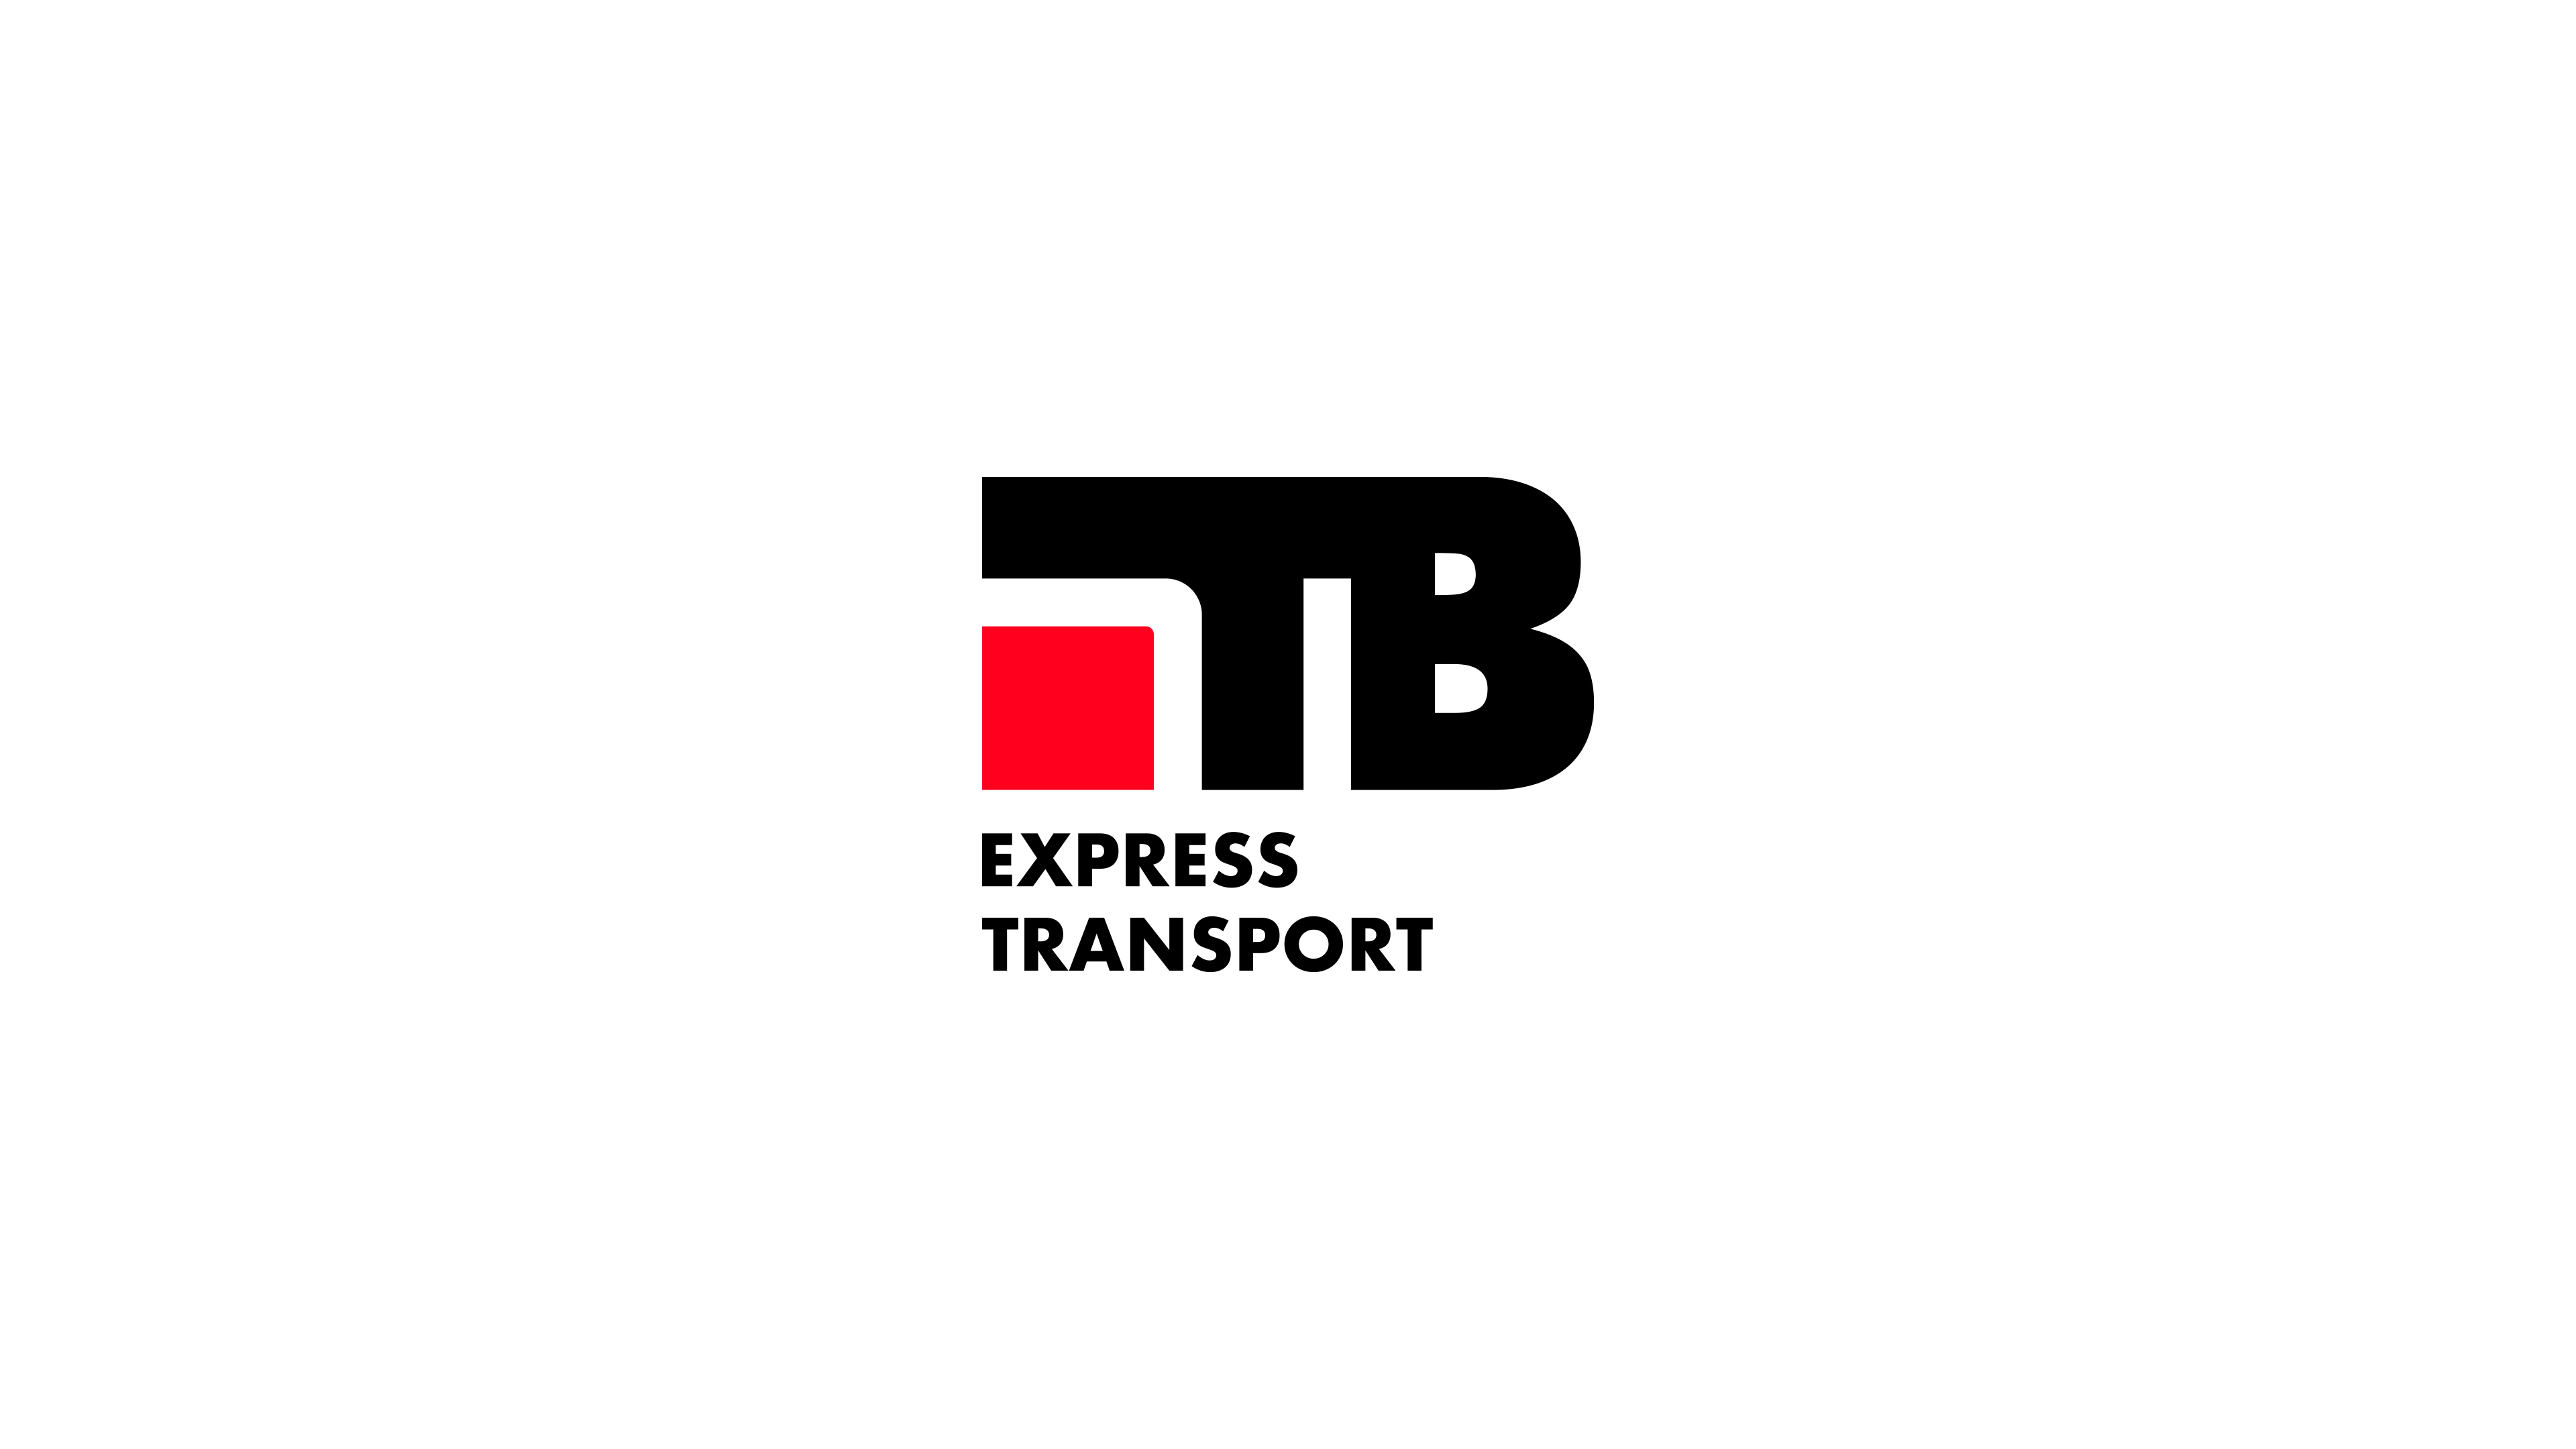 TB Express Transport